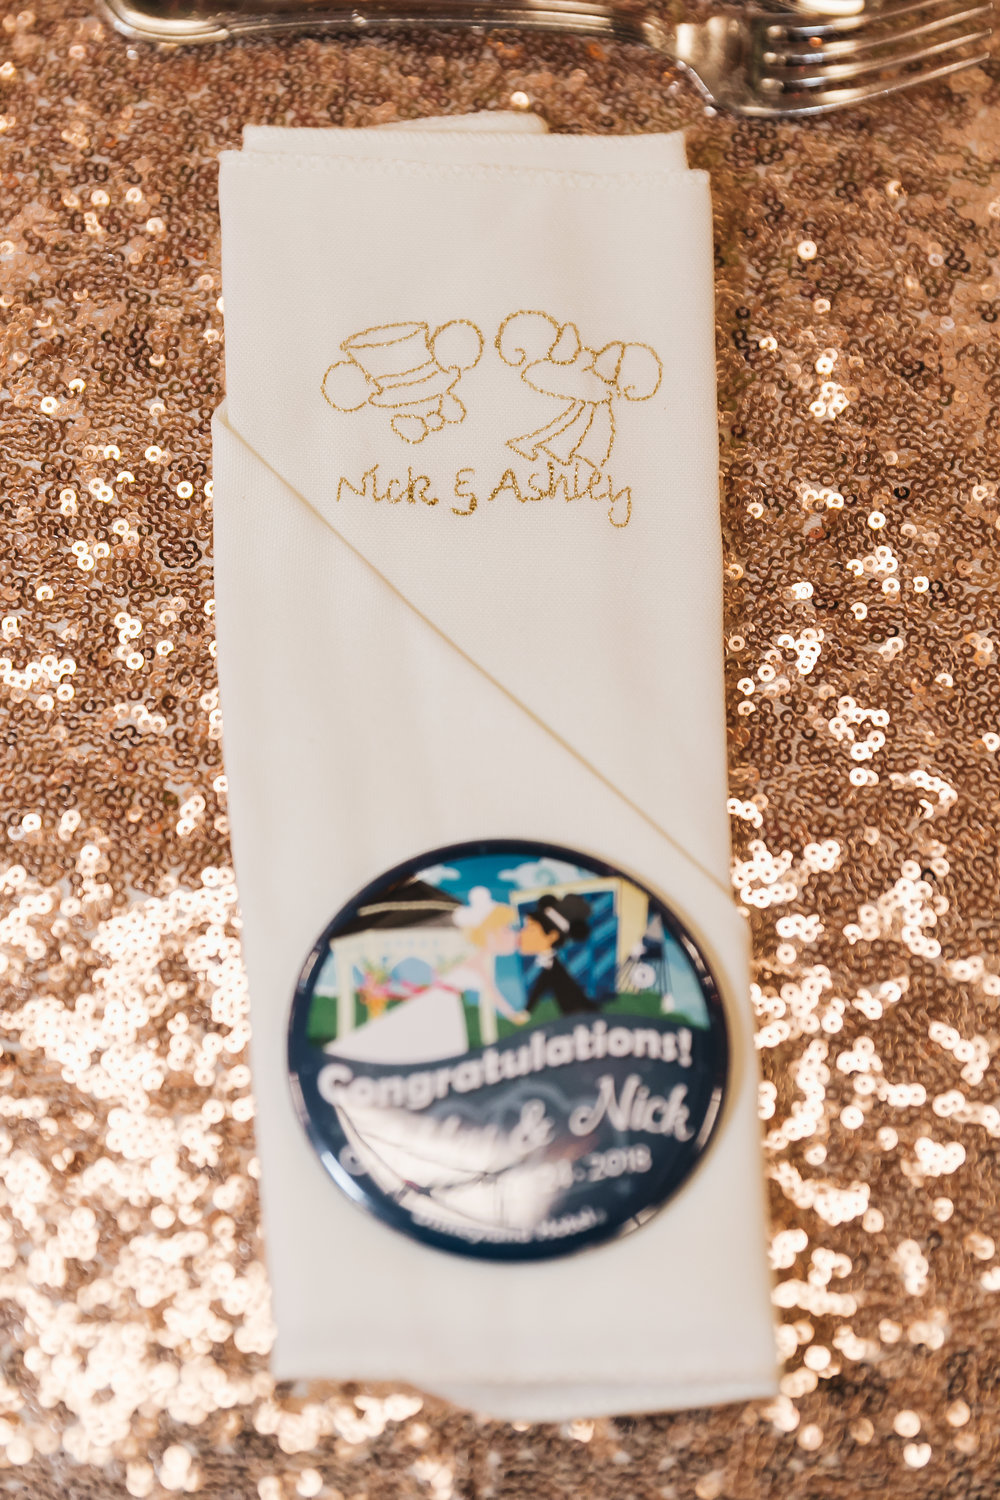 Customized Disney wedding napkin photo by Analisa Joy Photography. Wedding Beauty by Vanity Belle. www.thevanitybelle.com